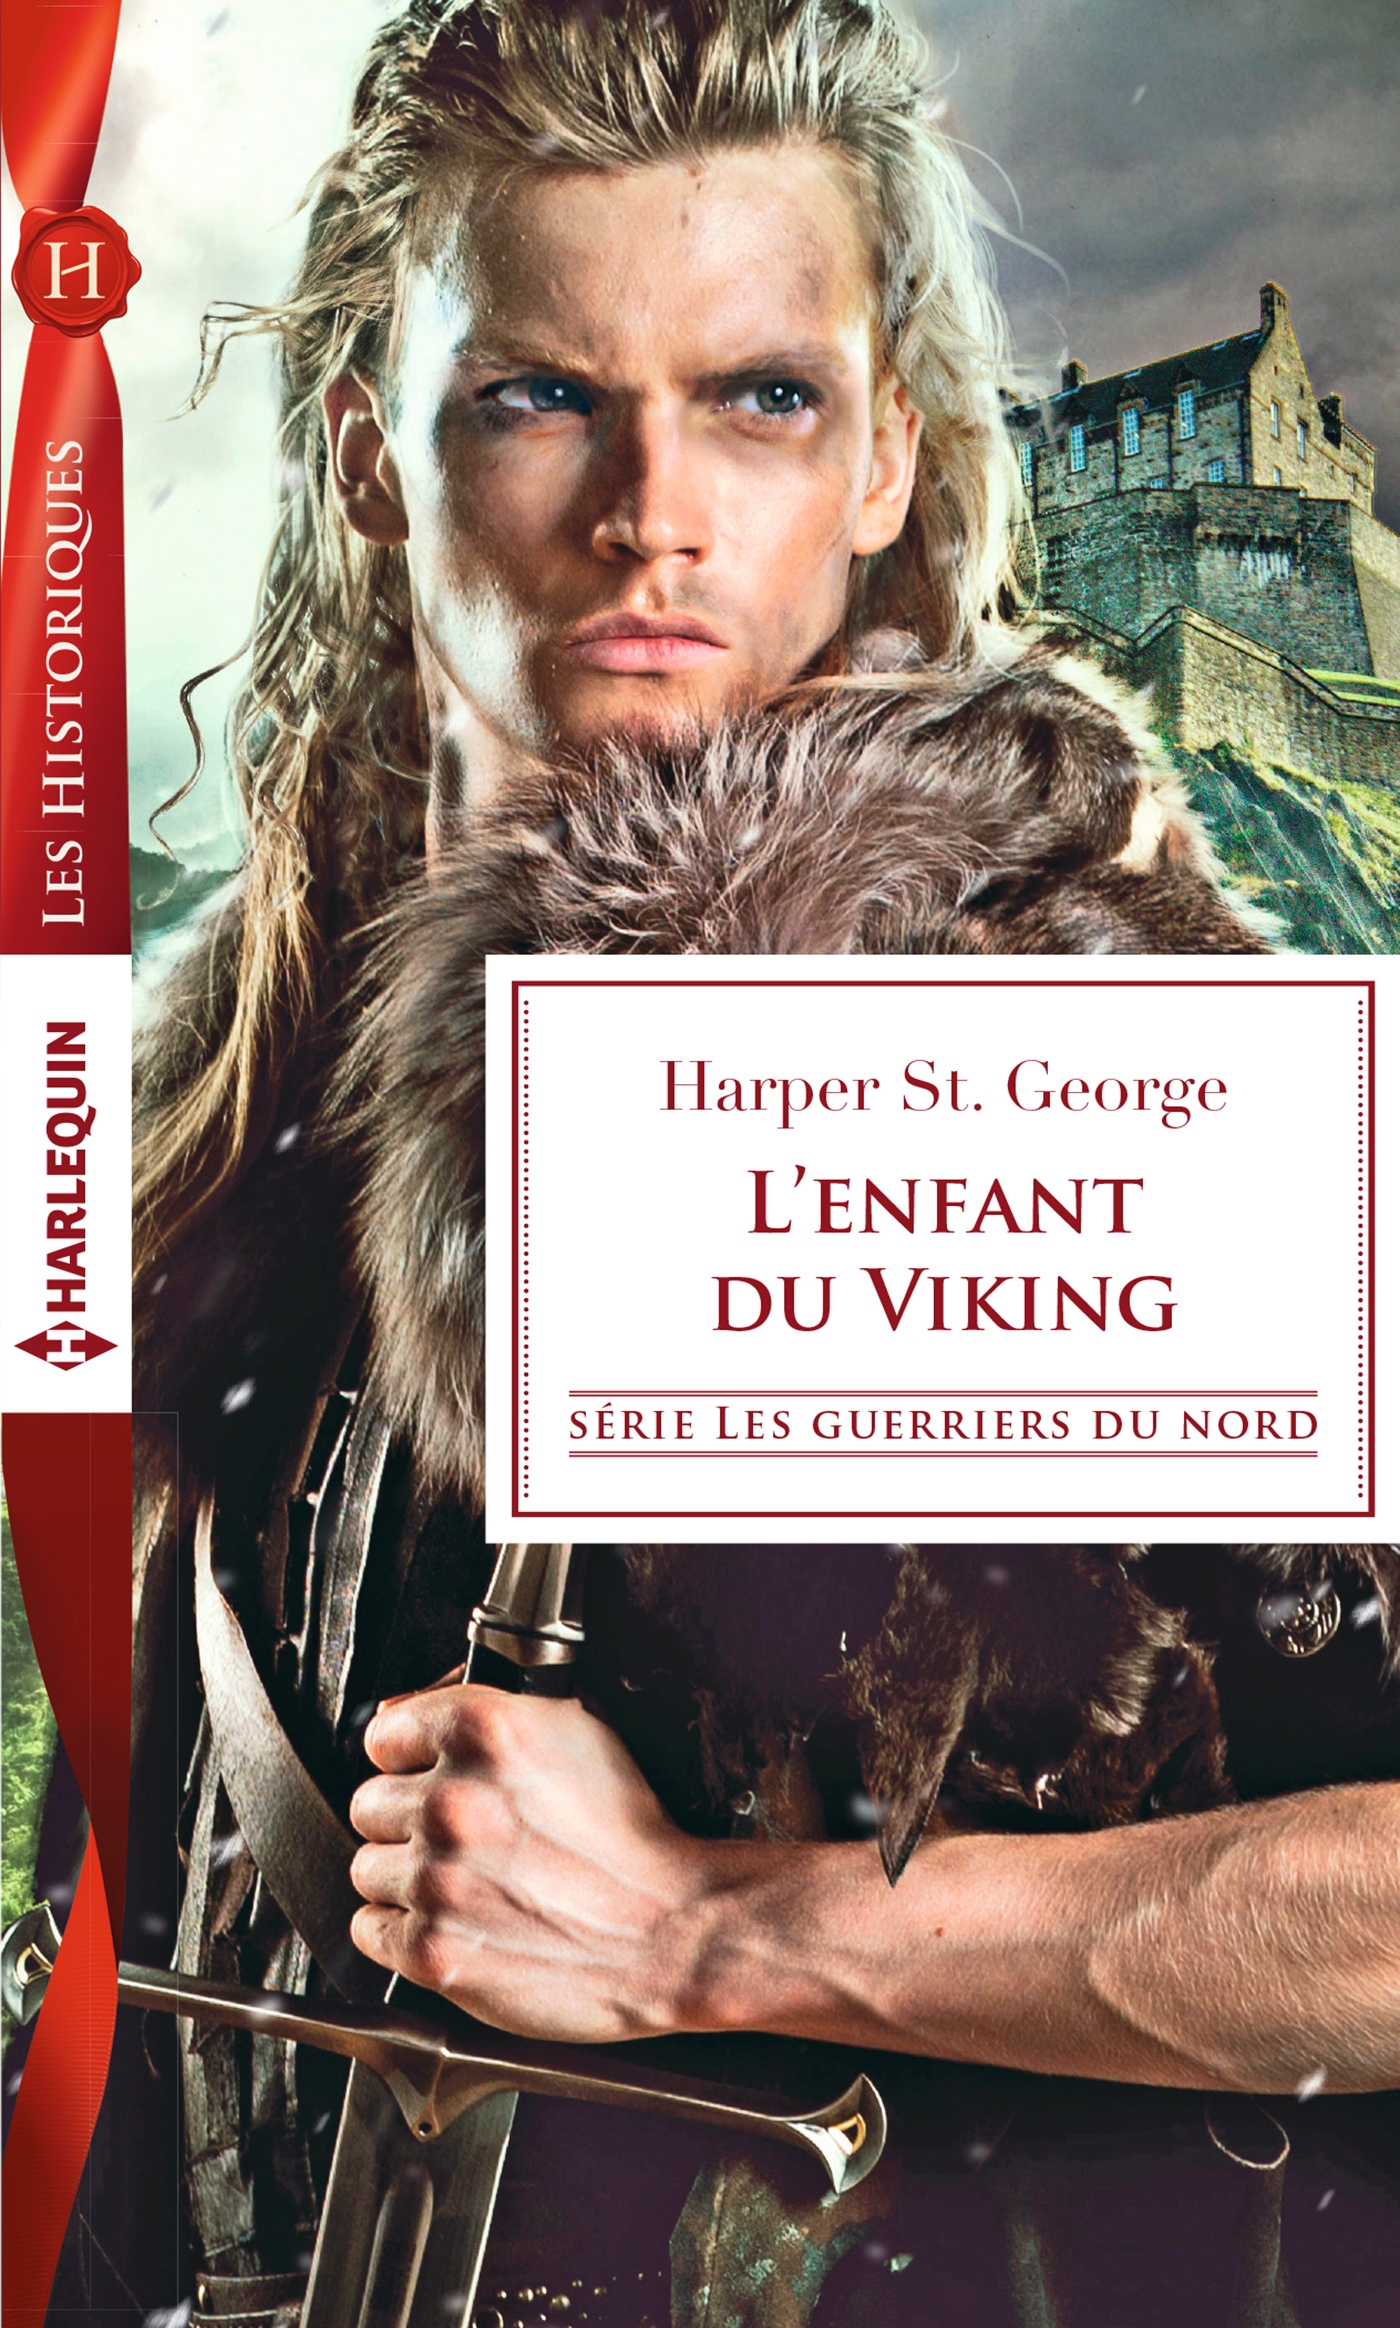 L'enfant du Viking